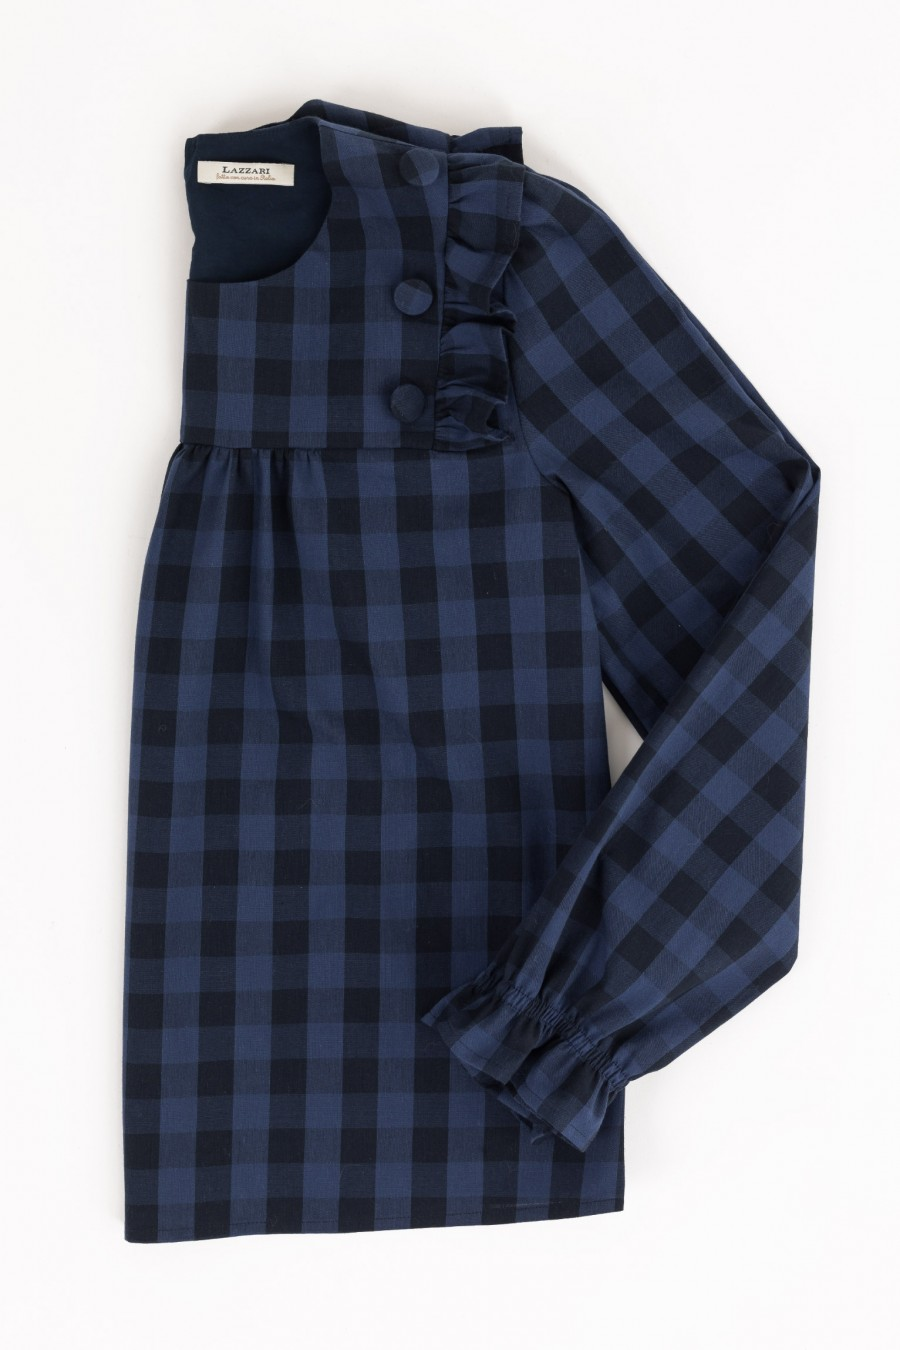 Blue and black tartan shirt